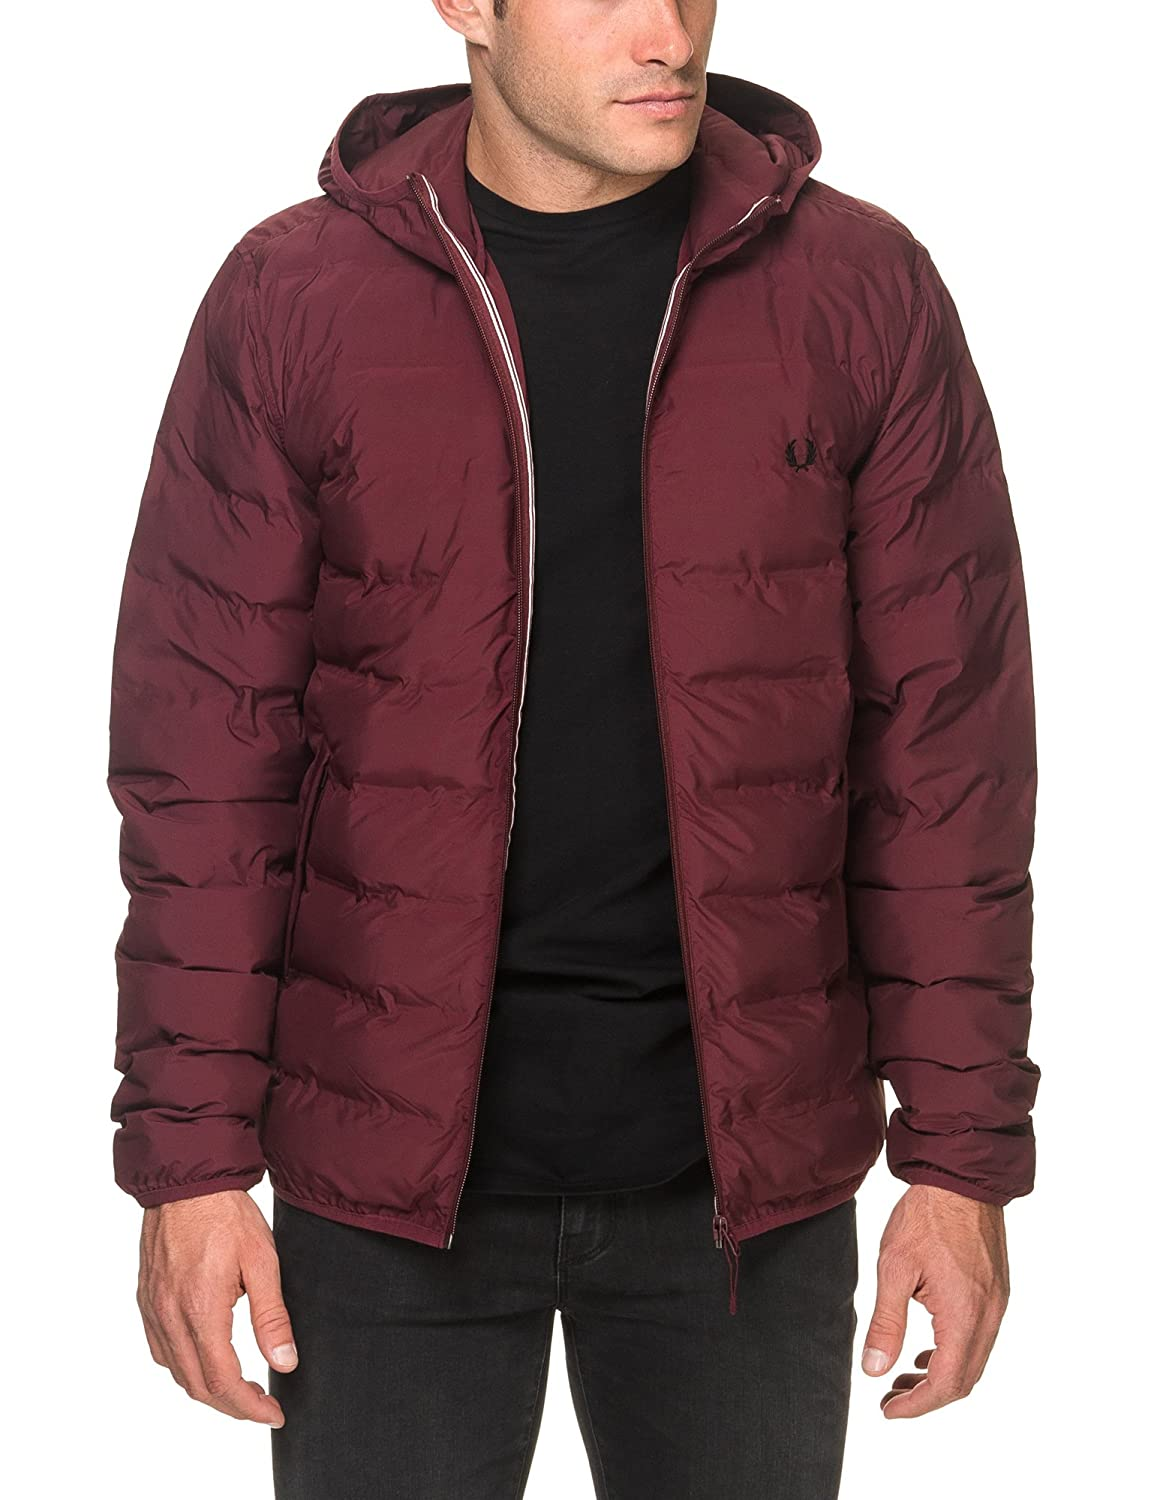 Amazon.com: Fred Perry Mens Jacket JK2514 Size L Red: Fred Perry: Clothing